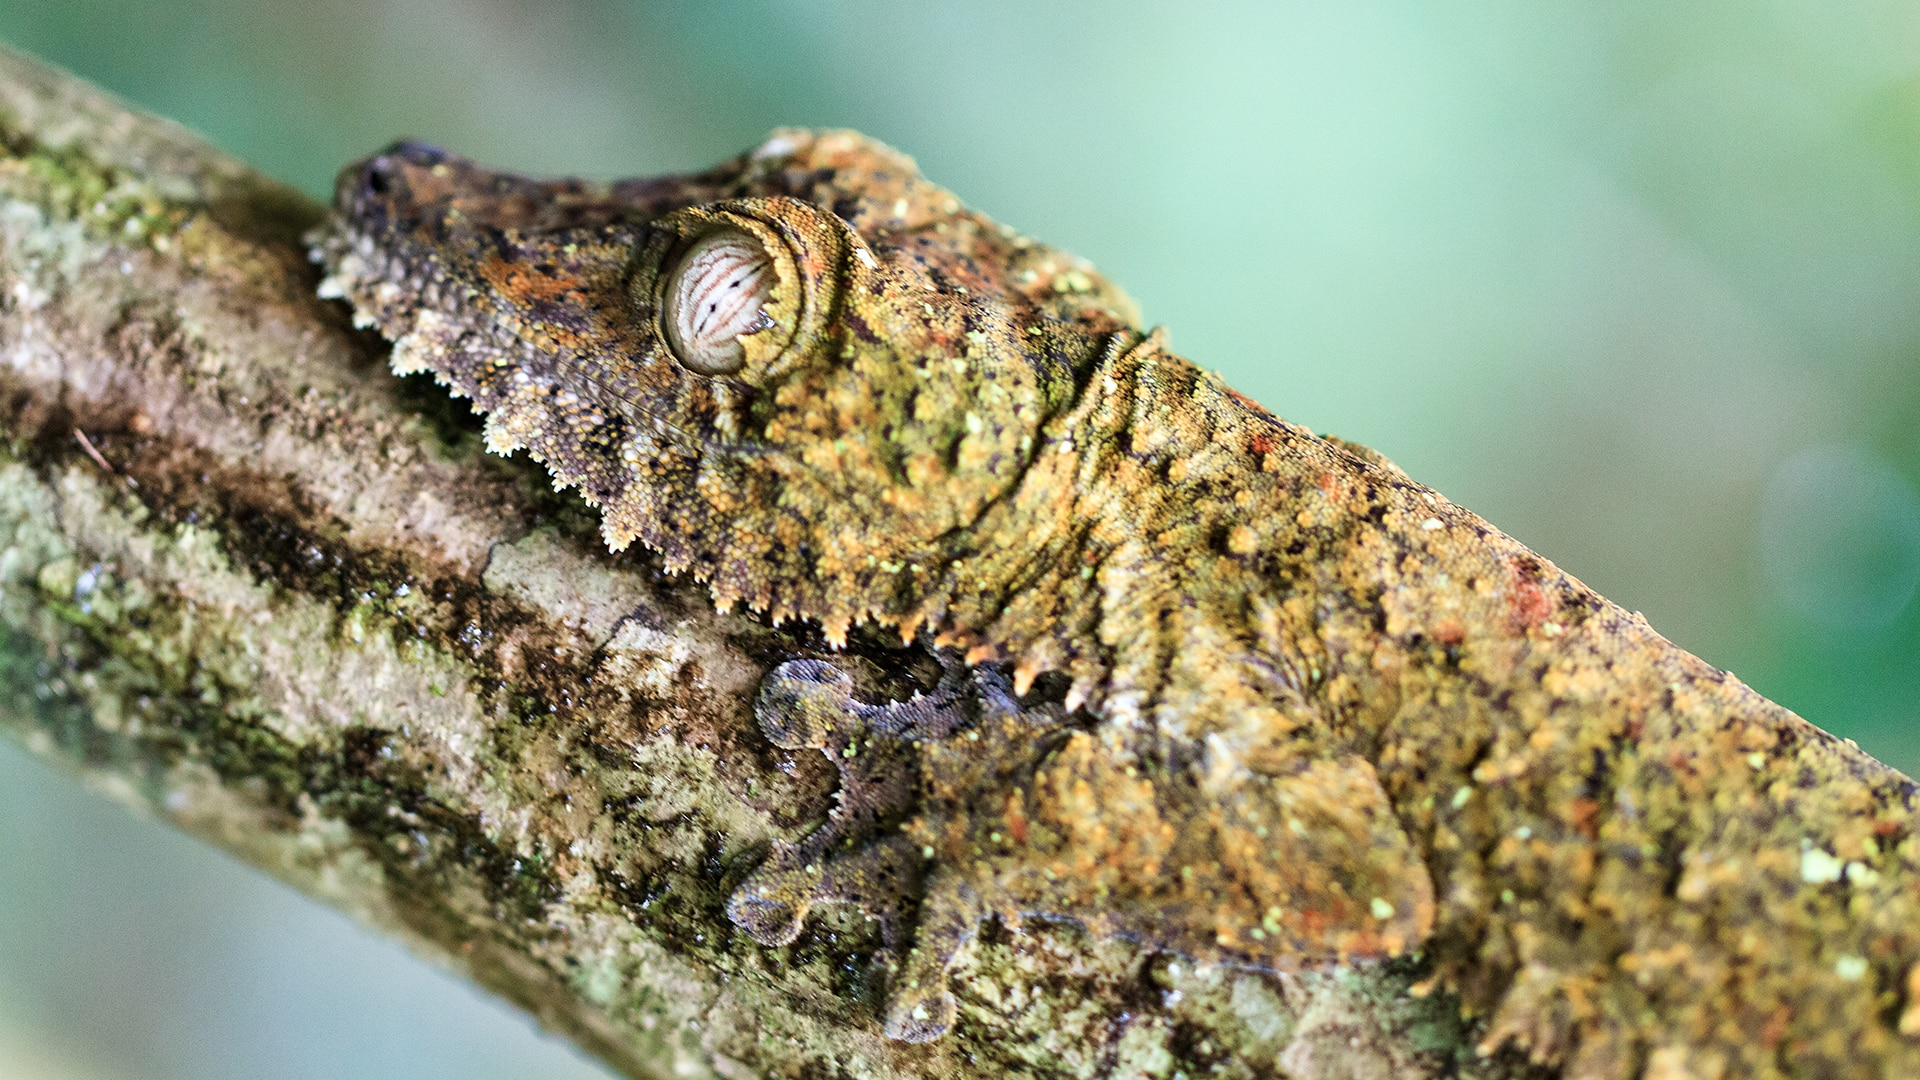 Giant leaf-tailed gecko on branch